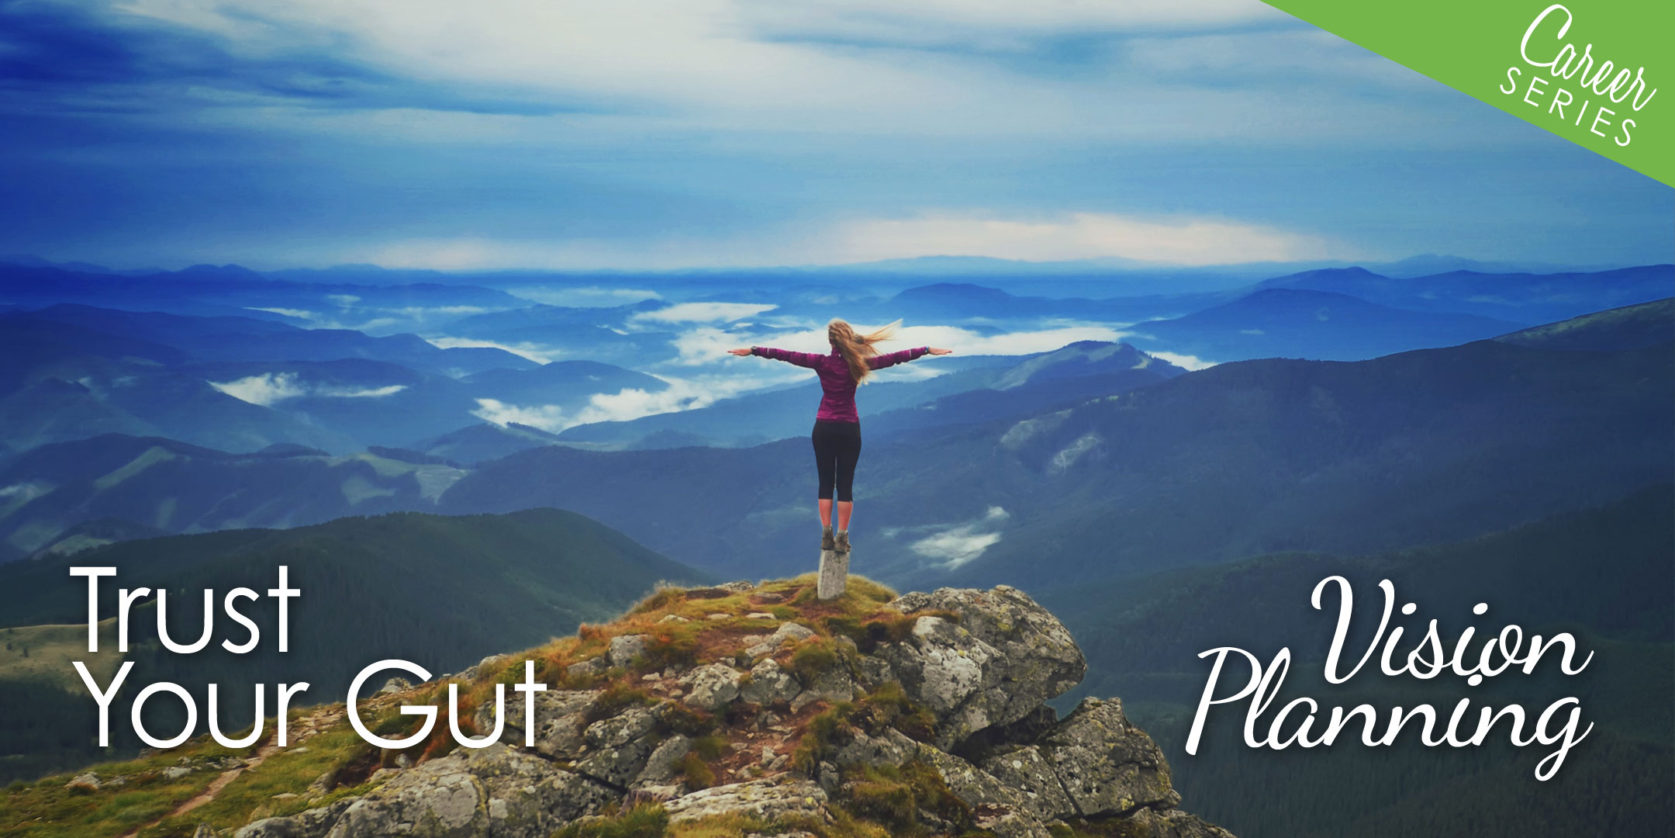 Trust Your Gut - Vision Planning Banner